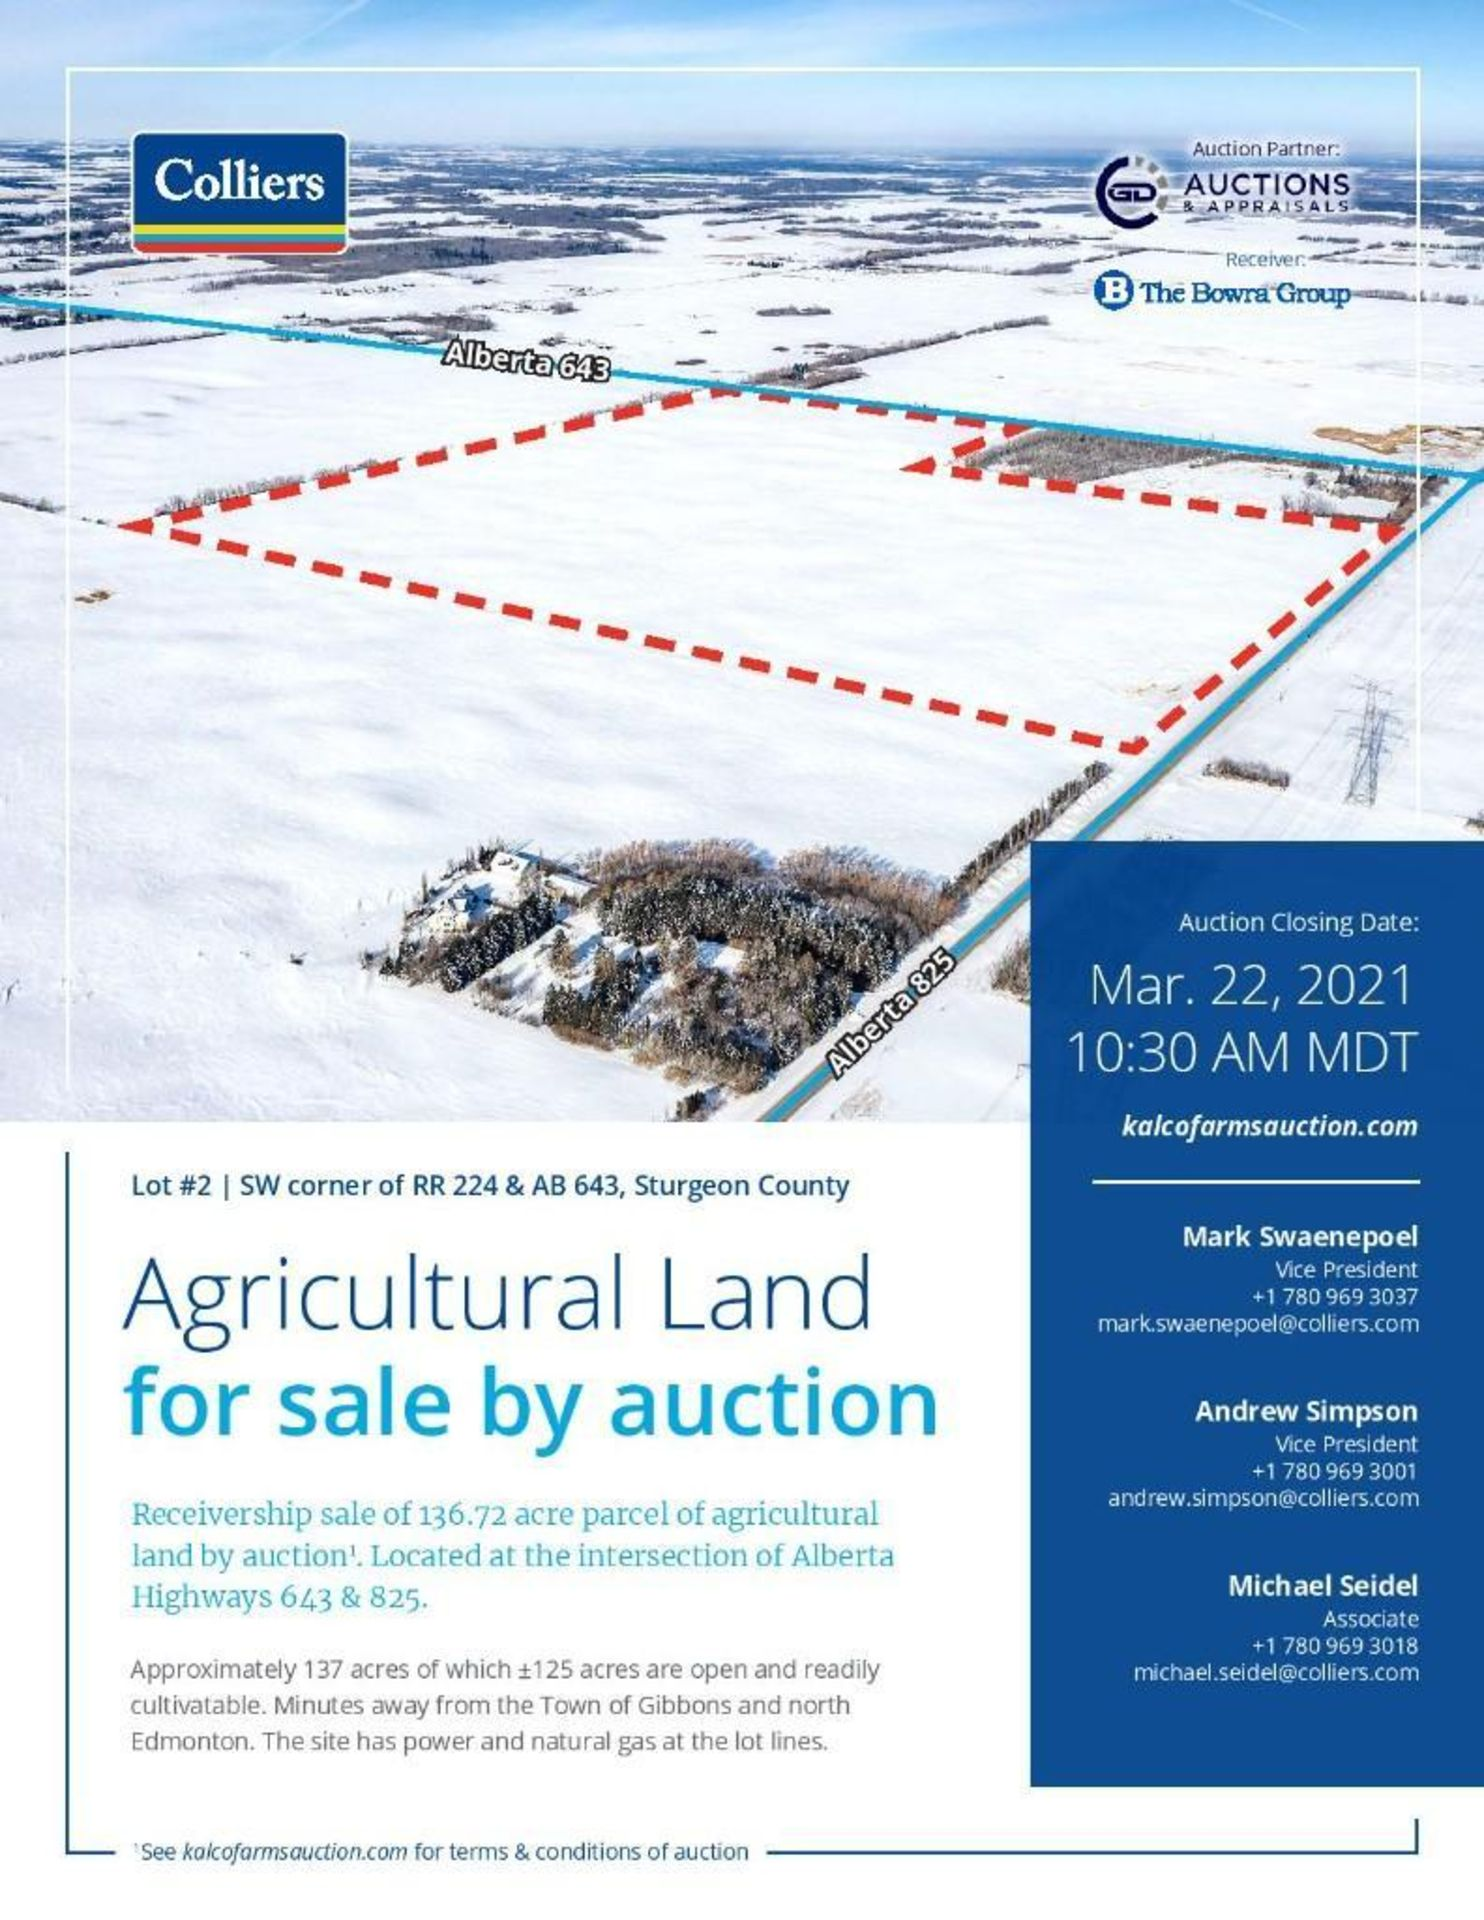 Lands located at Civic Address SW corner of RR 224 & AB 643, Sturgeon County. - Image 2 of 7